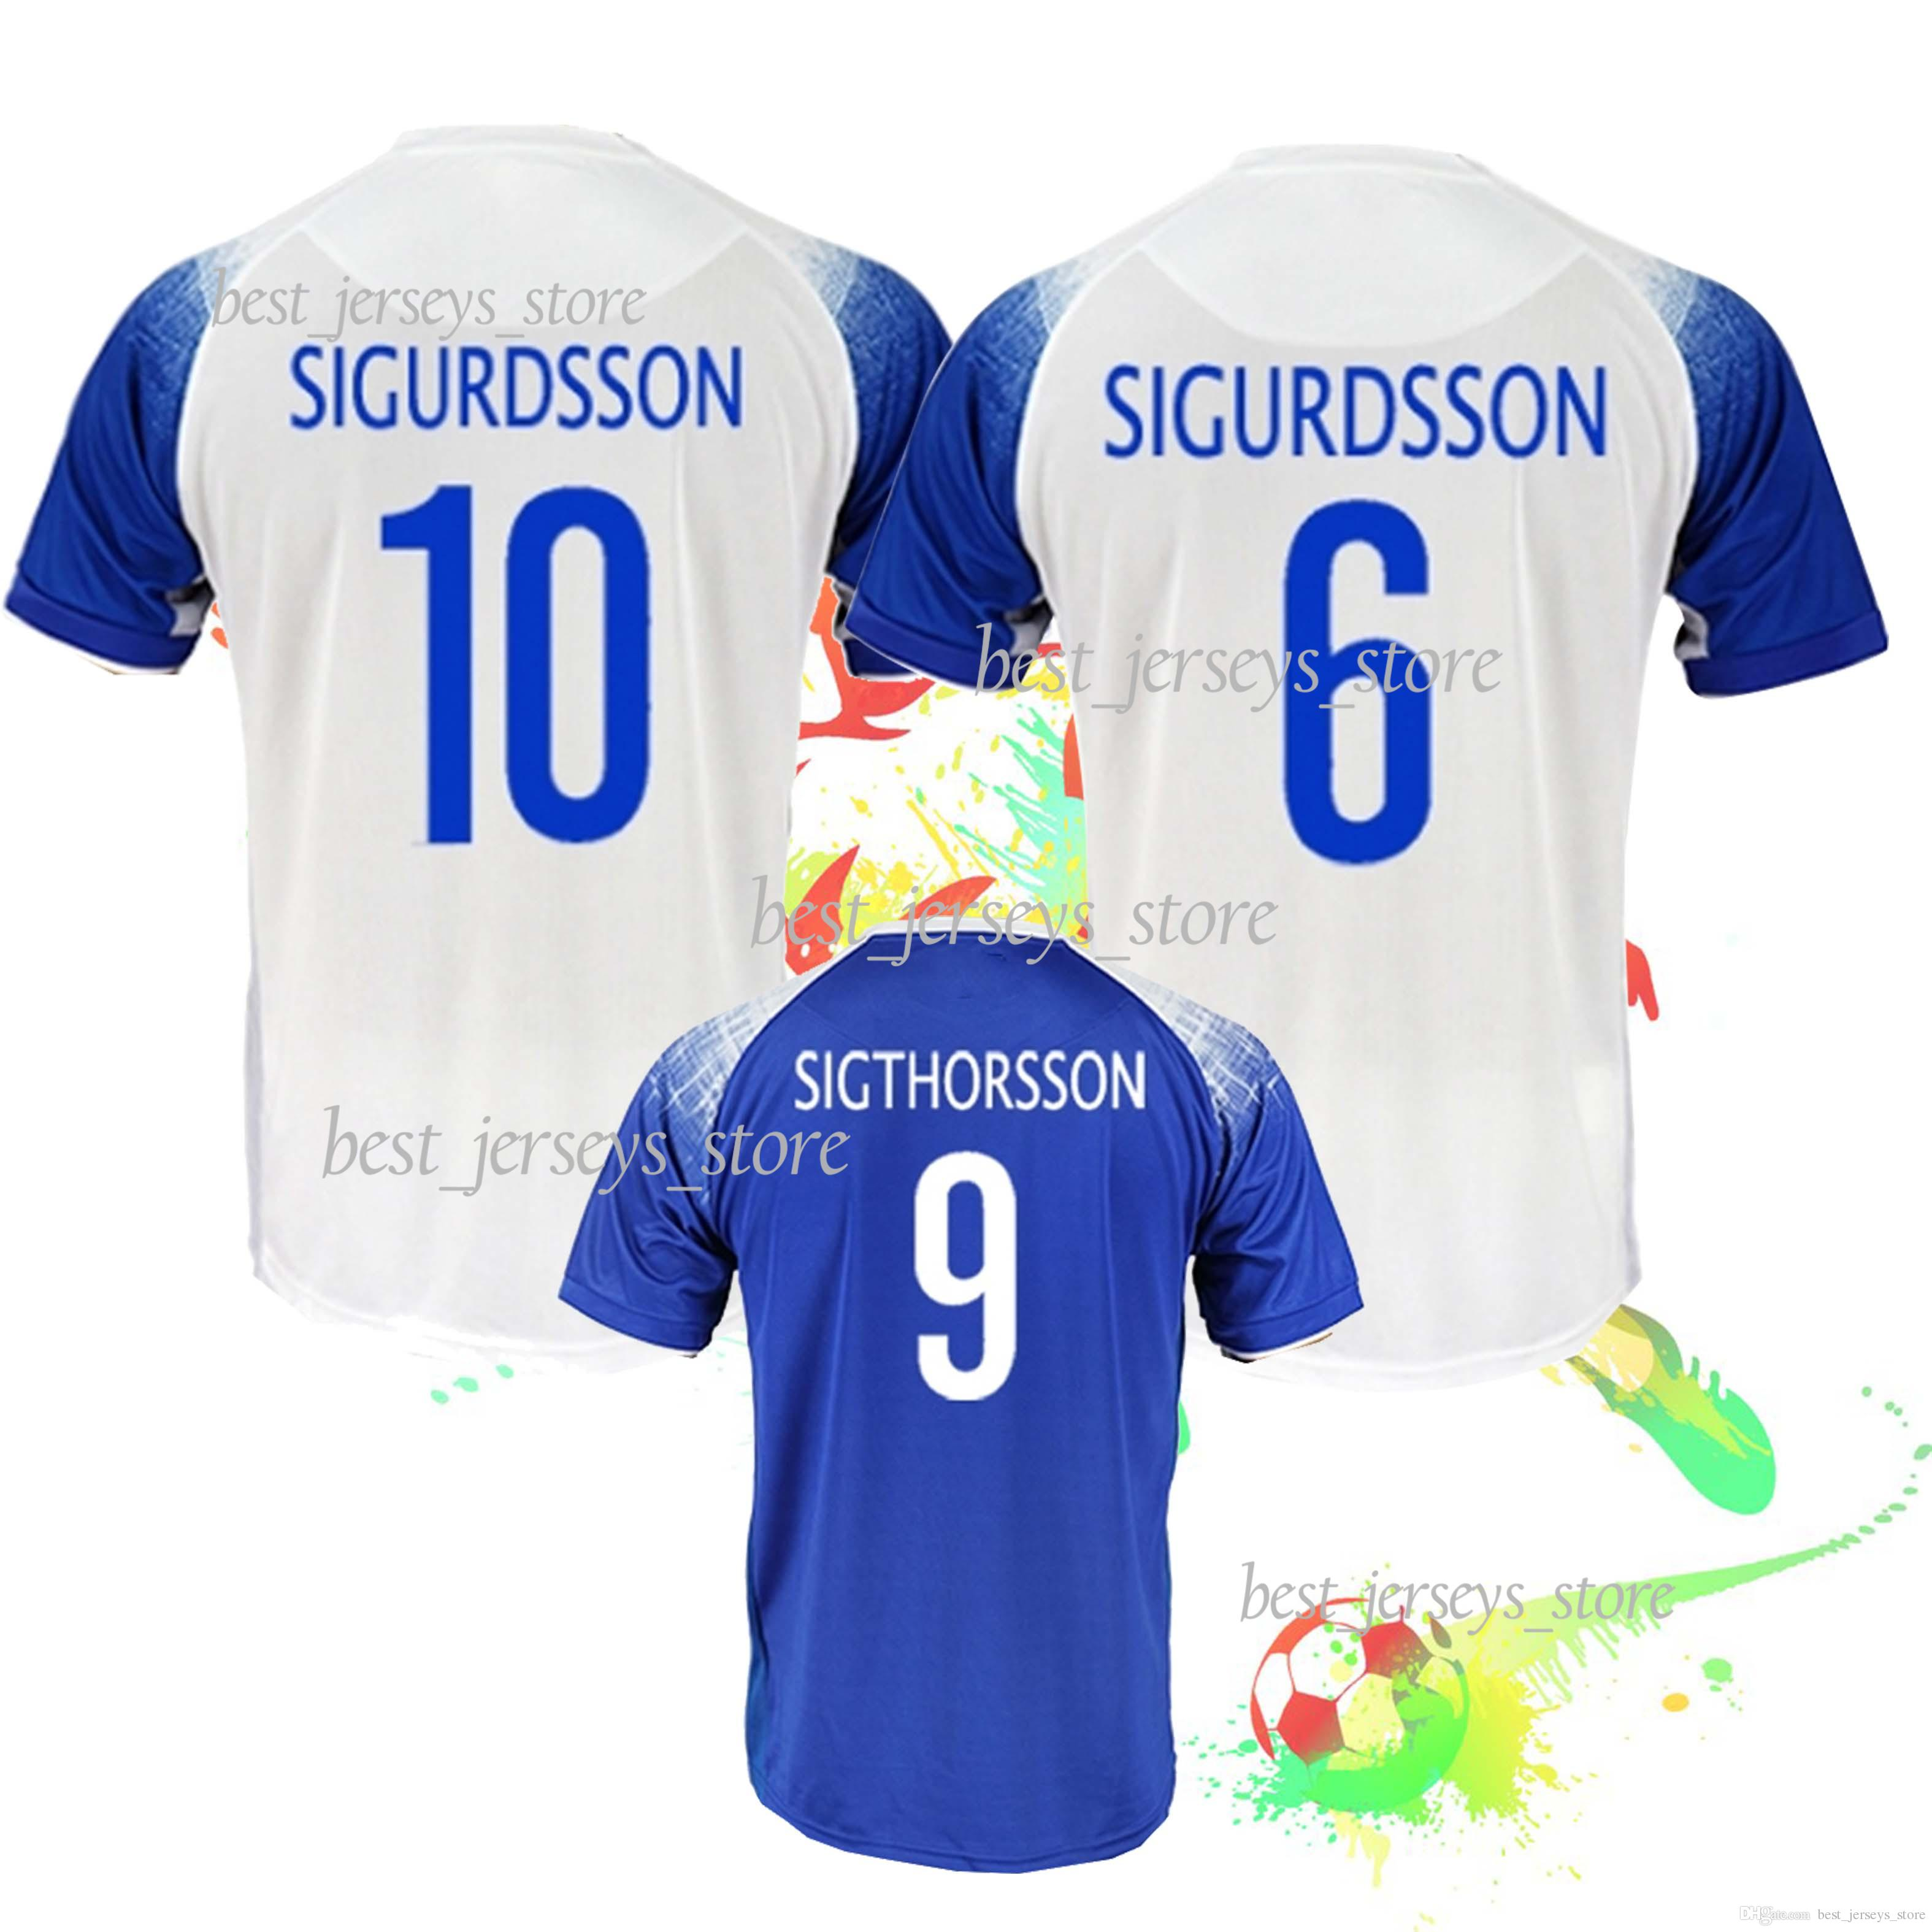 superior quality 8c00a 1513e GUDMUNDSSON Iceland soccer Jersey SIGTHORSSON G.SIGURDSSON TRAUSTASON  Football shirts FINNBOGASON INGASON new 2018 world cup